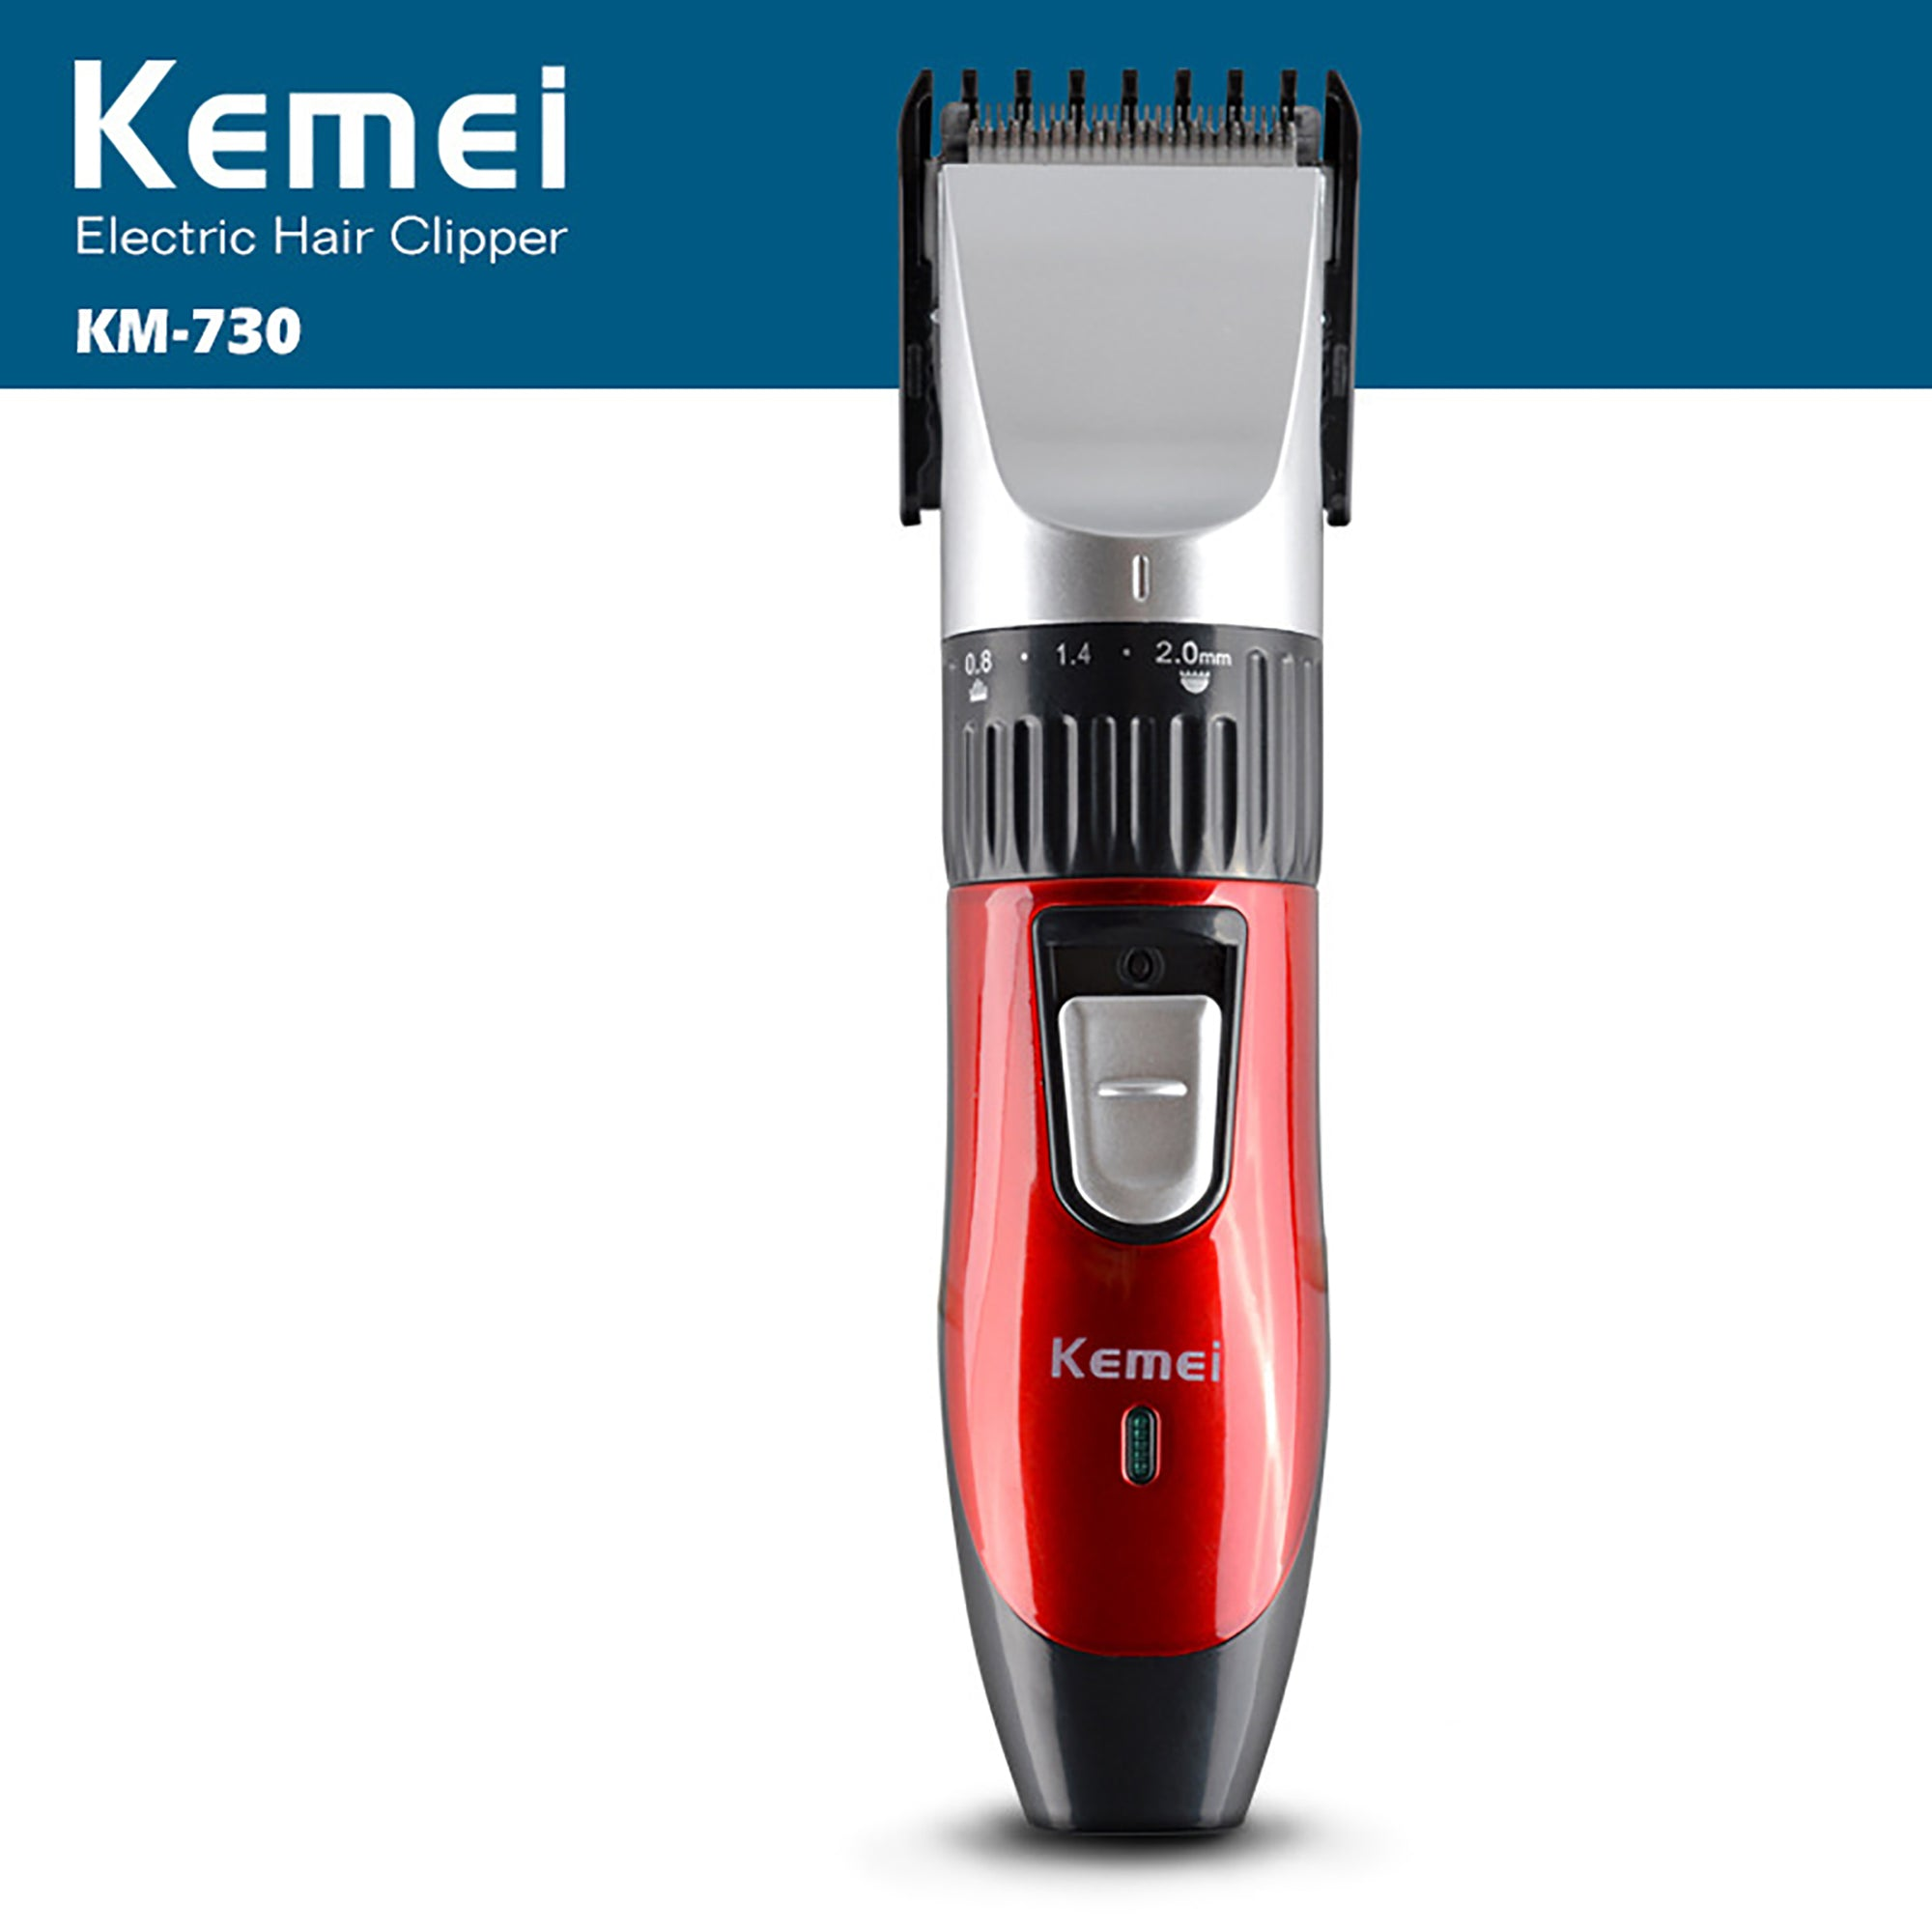 Professional Kemei Rechargeable Cordless Beard/Hair Clipper Km-730-SK0376